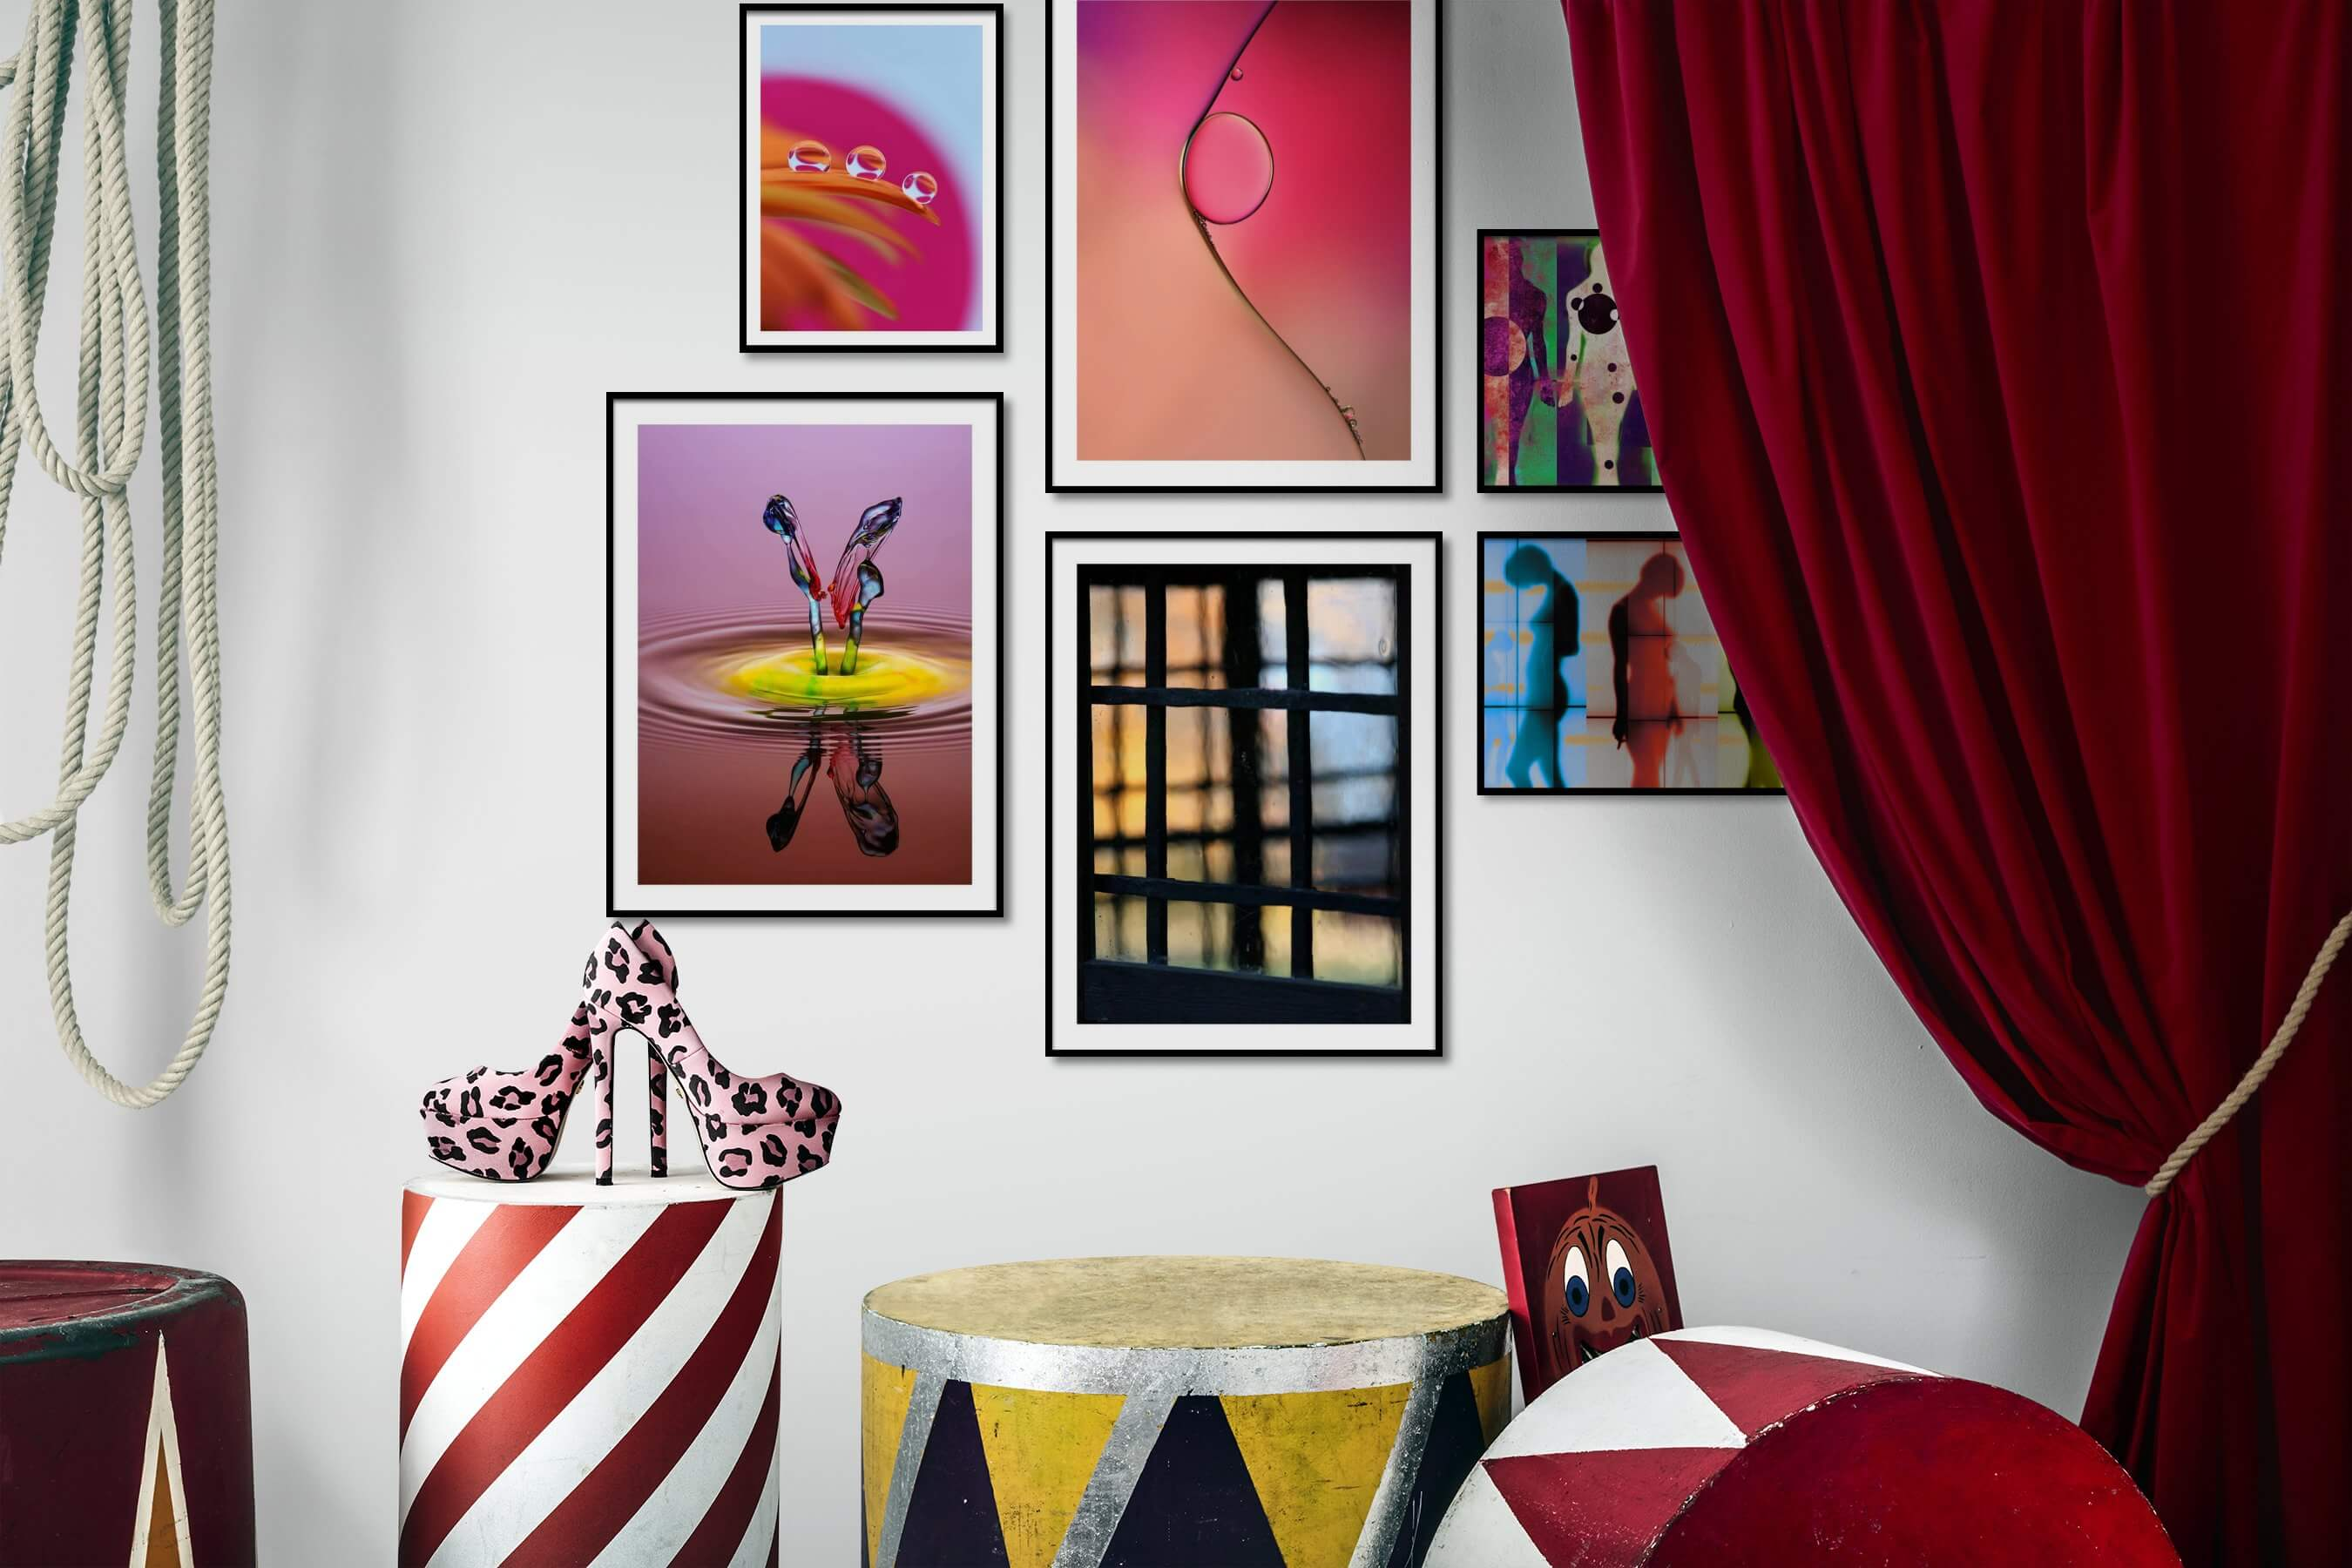 Gallery wall idea with six framed pictures arranged on a wall depicting Colorful, For the Moderate, Flowers & Plants, For the Minimalist, Artsy, and For the Maximalist